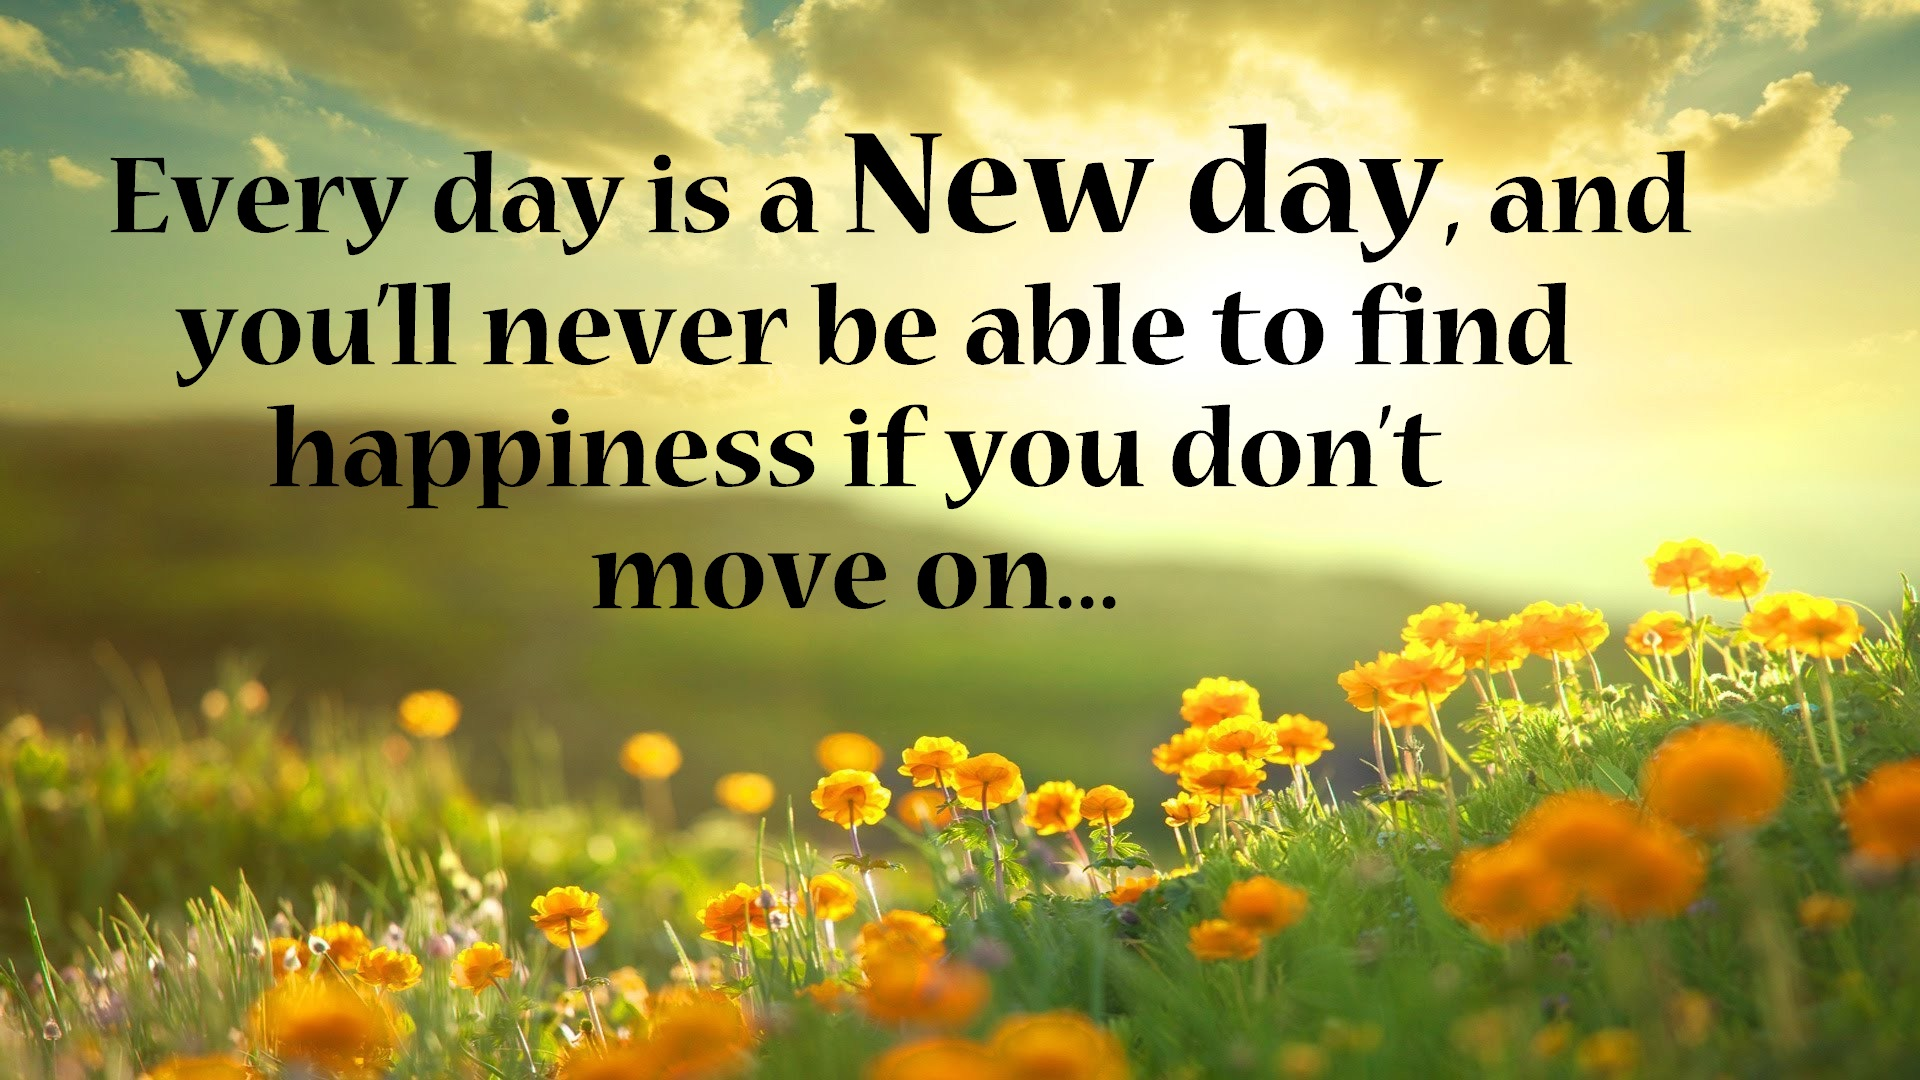 New Day Quotes Images Morning Quotes Wishes Images